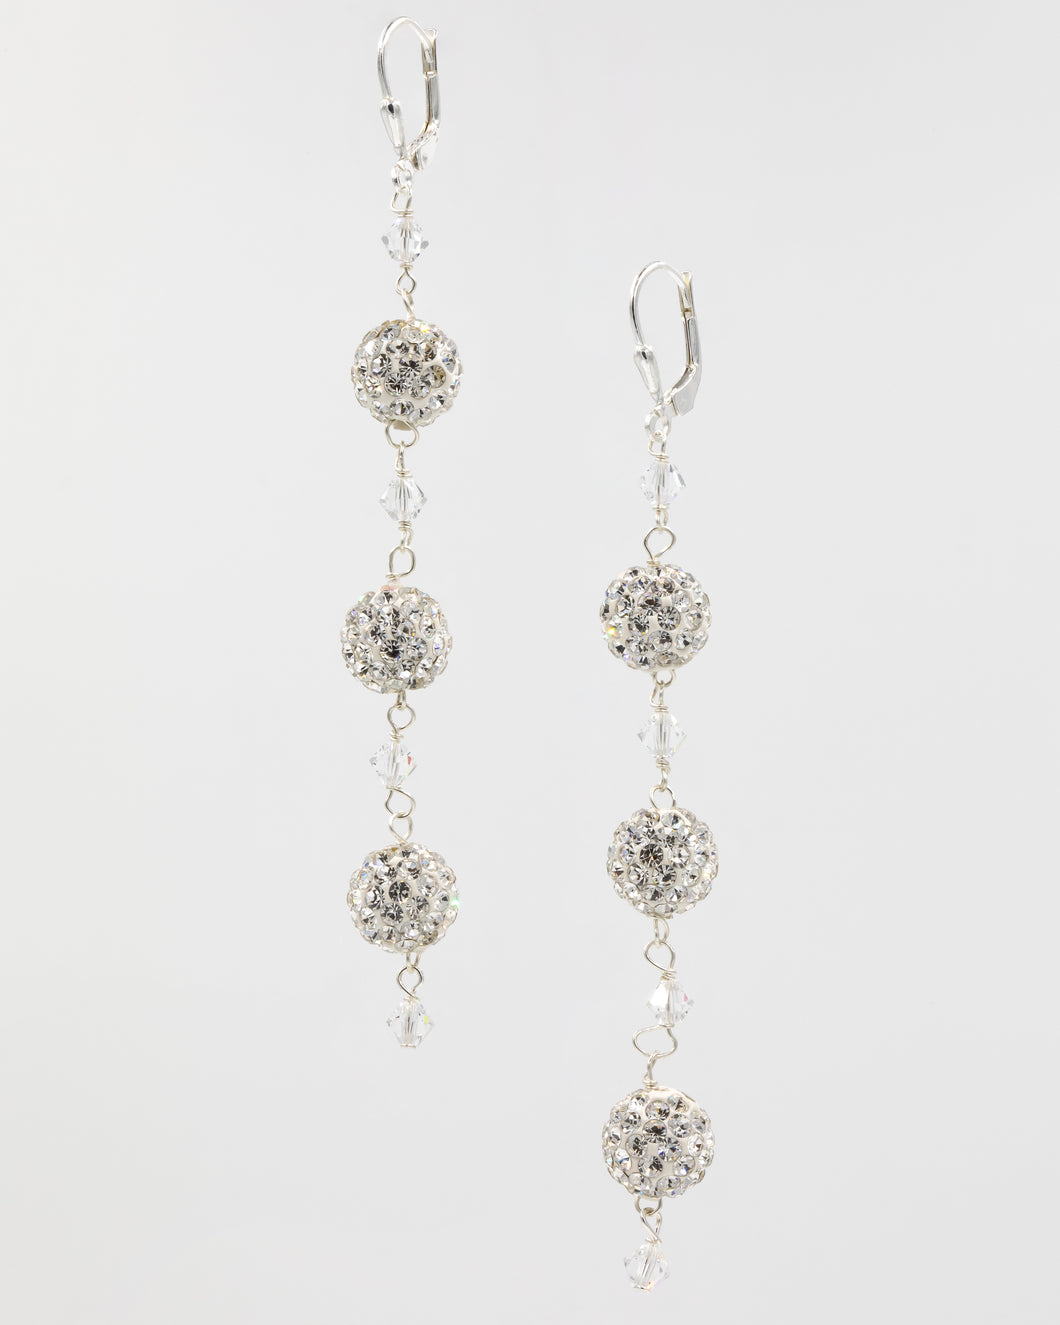 Picture of earrings with Swarovski crystal pavé balls